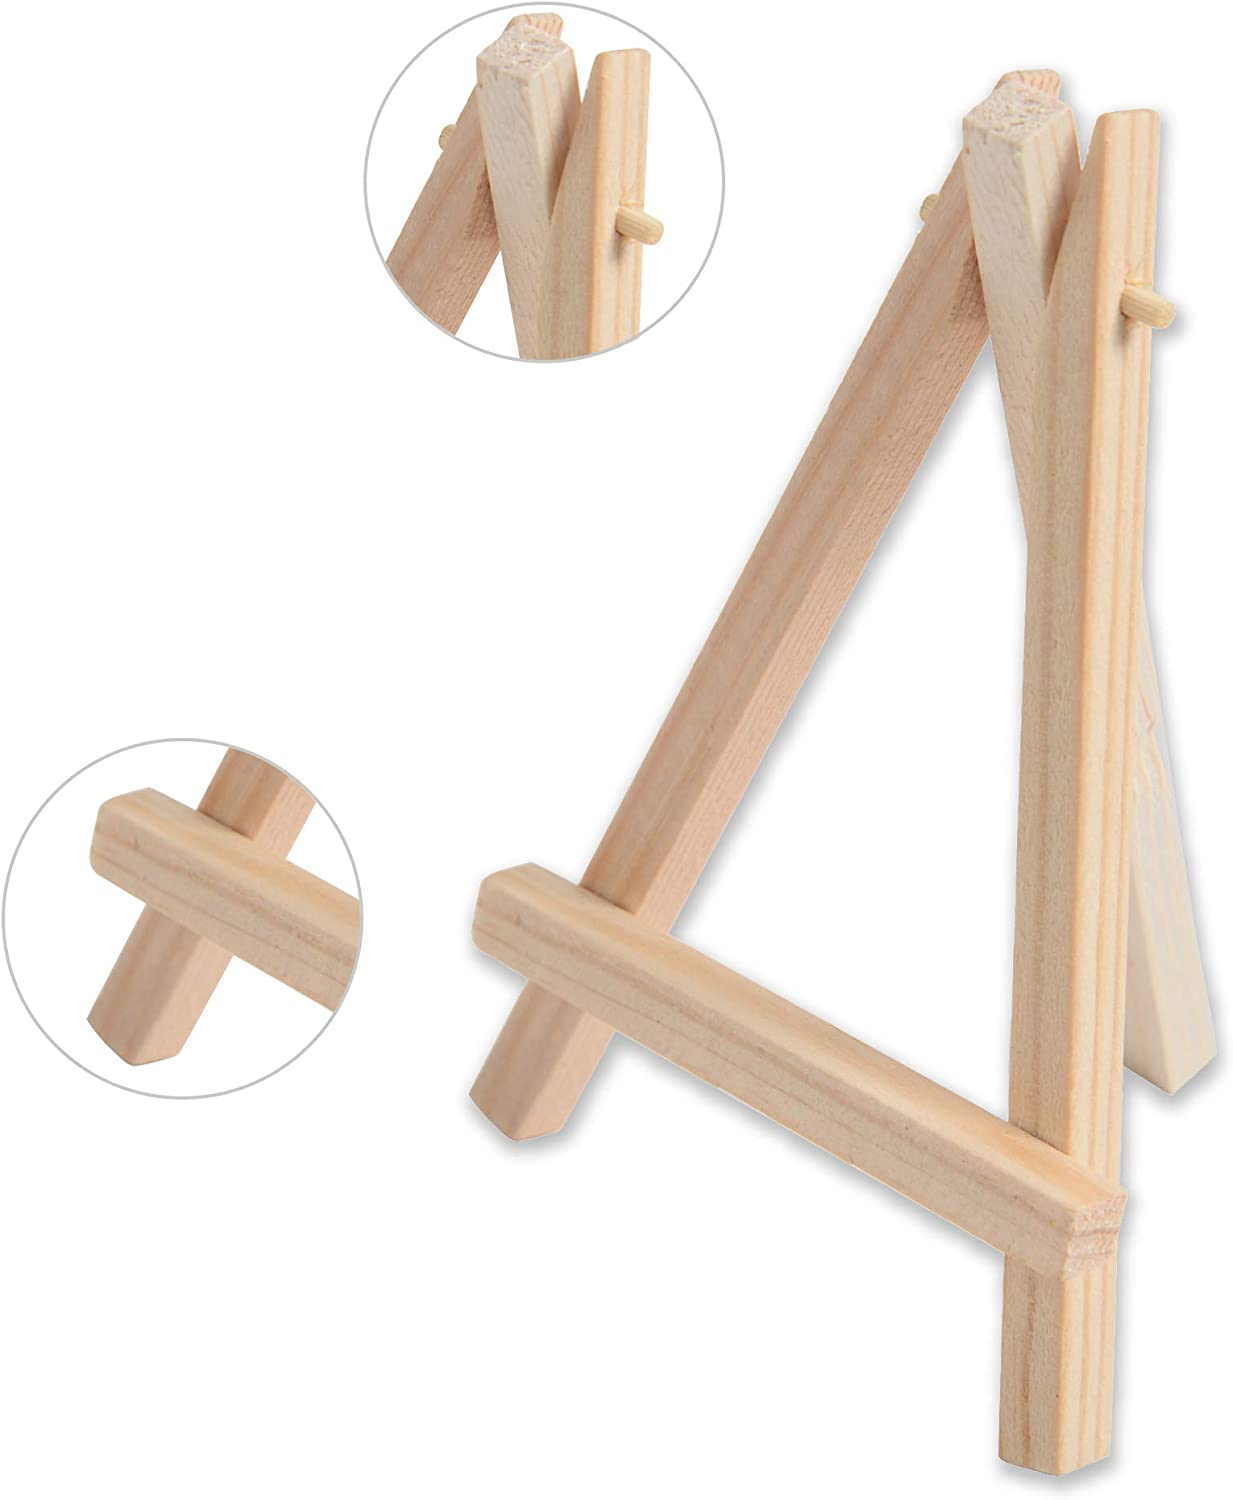 Small Stretched Canvas Tavolozza 28pc Canvas and Easel Set Include 14pc 5 Mini Easel and 14pc 4x4 Mini Canvas Panels for Drawing Painting Professional Kids Art Supplies